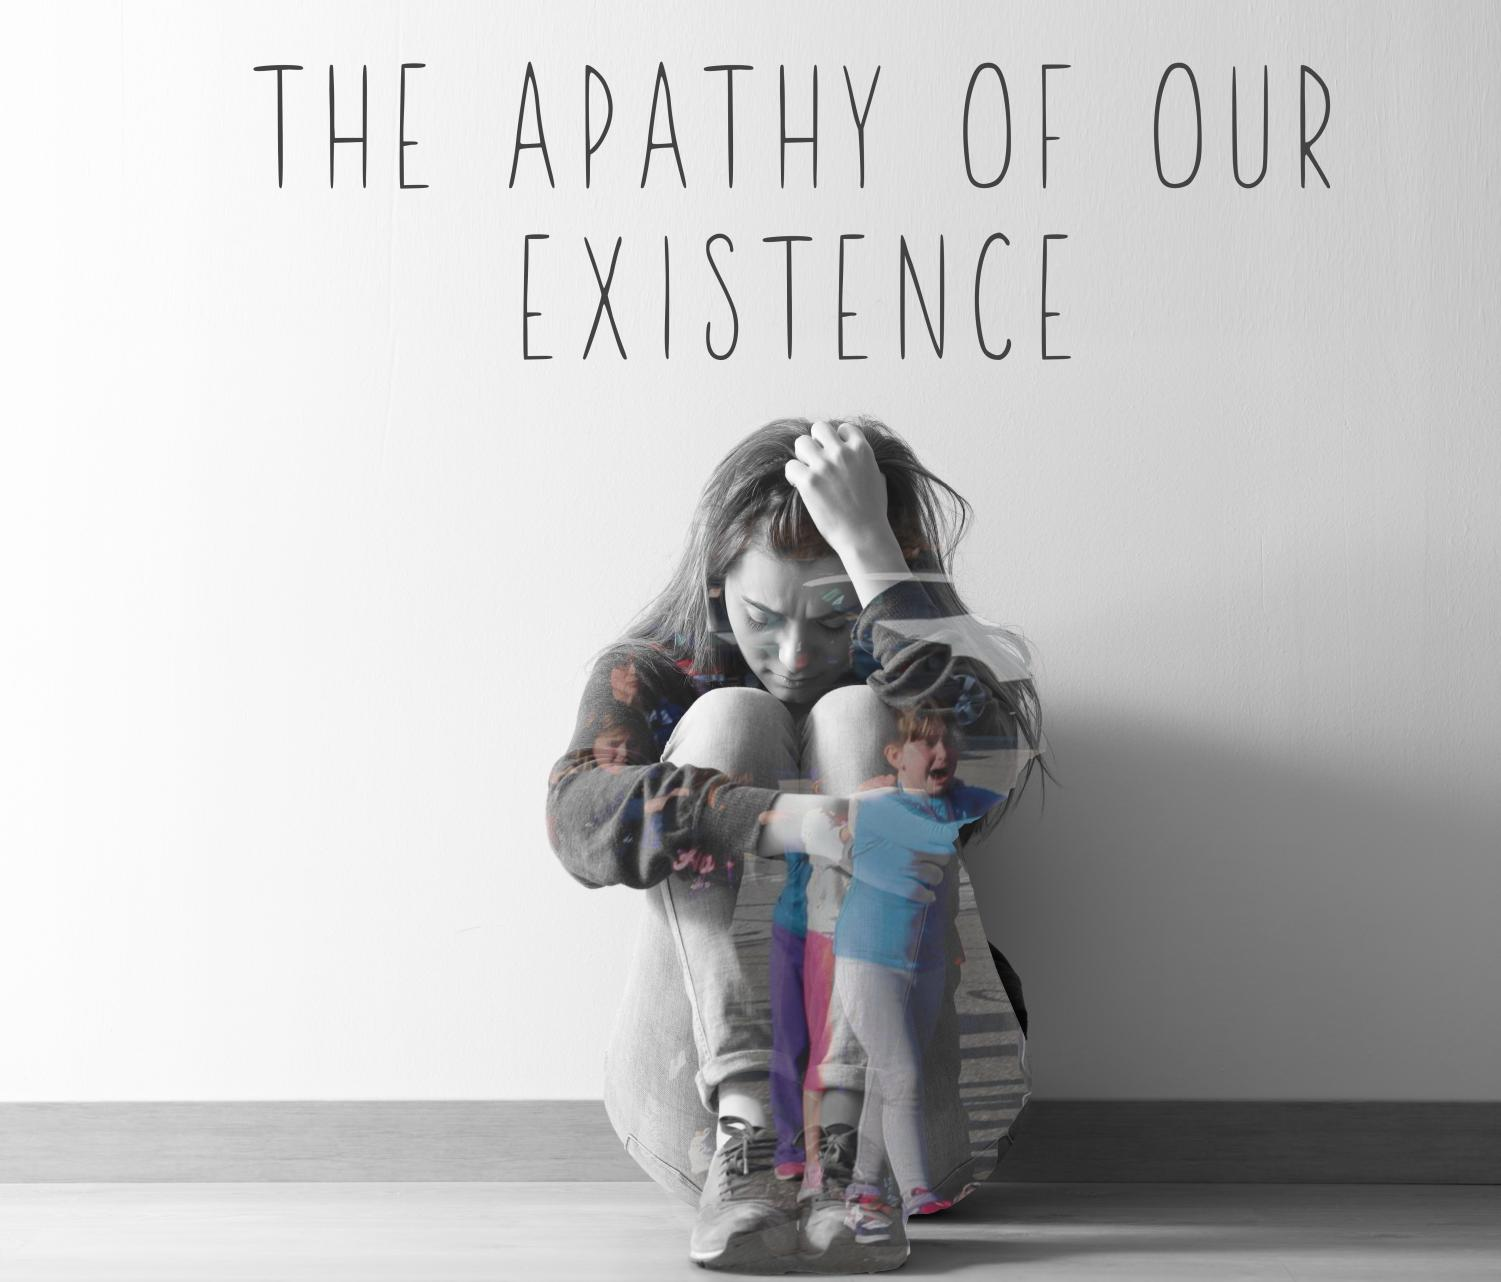 Opinion- The Apathy of Our Existence